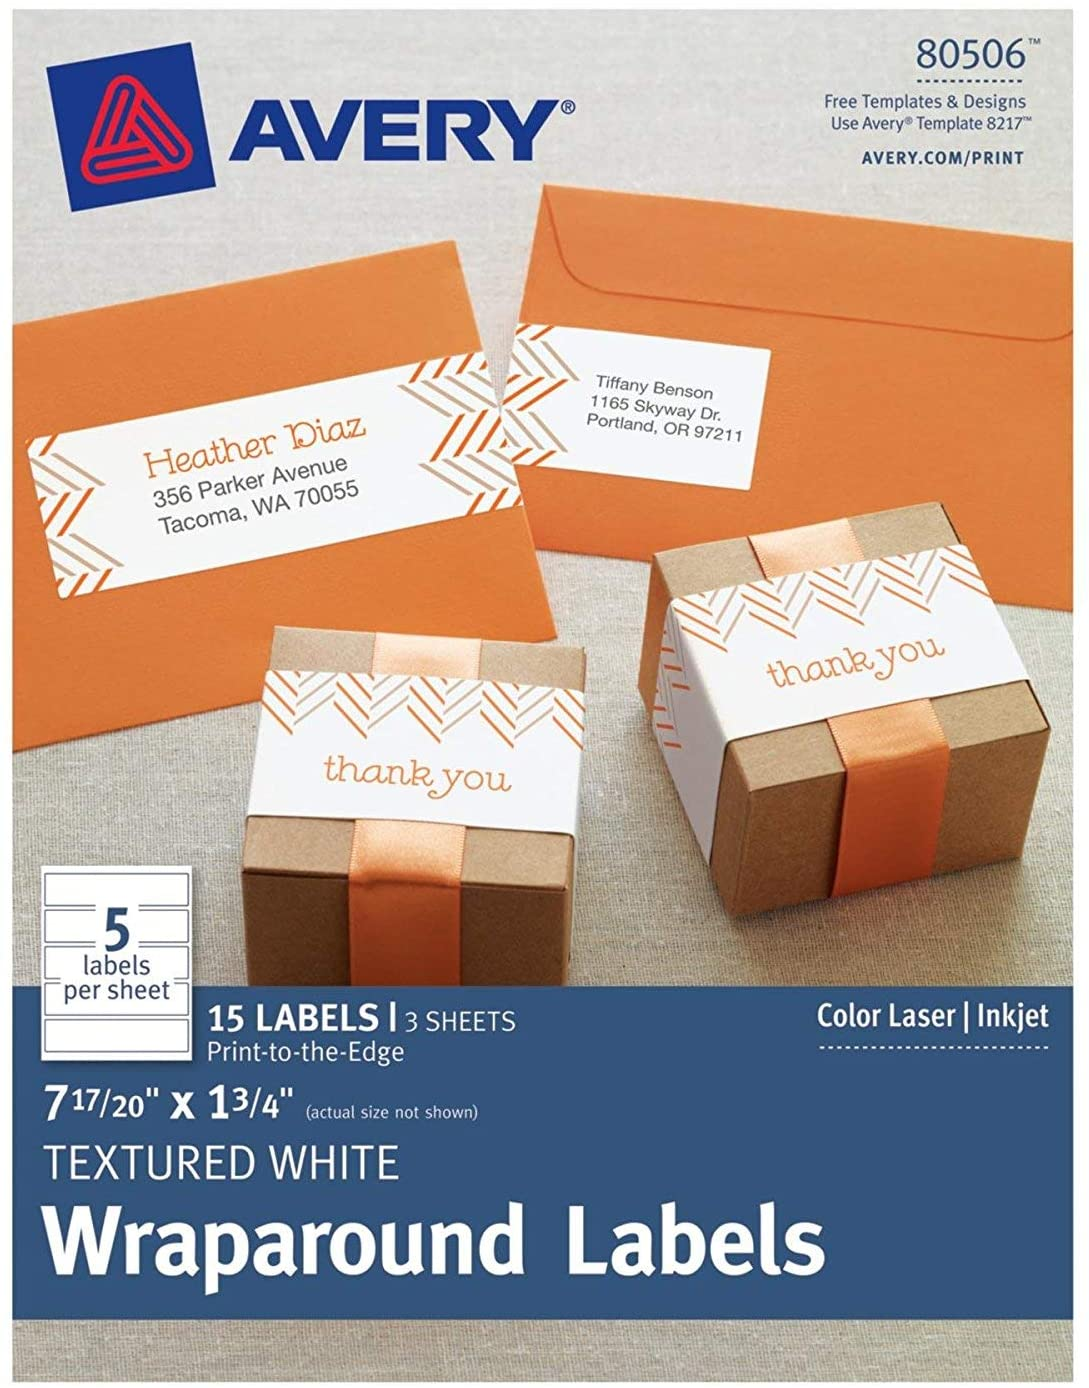 Avery® Wraparound Labels Water Resistant Image